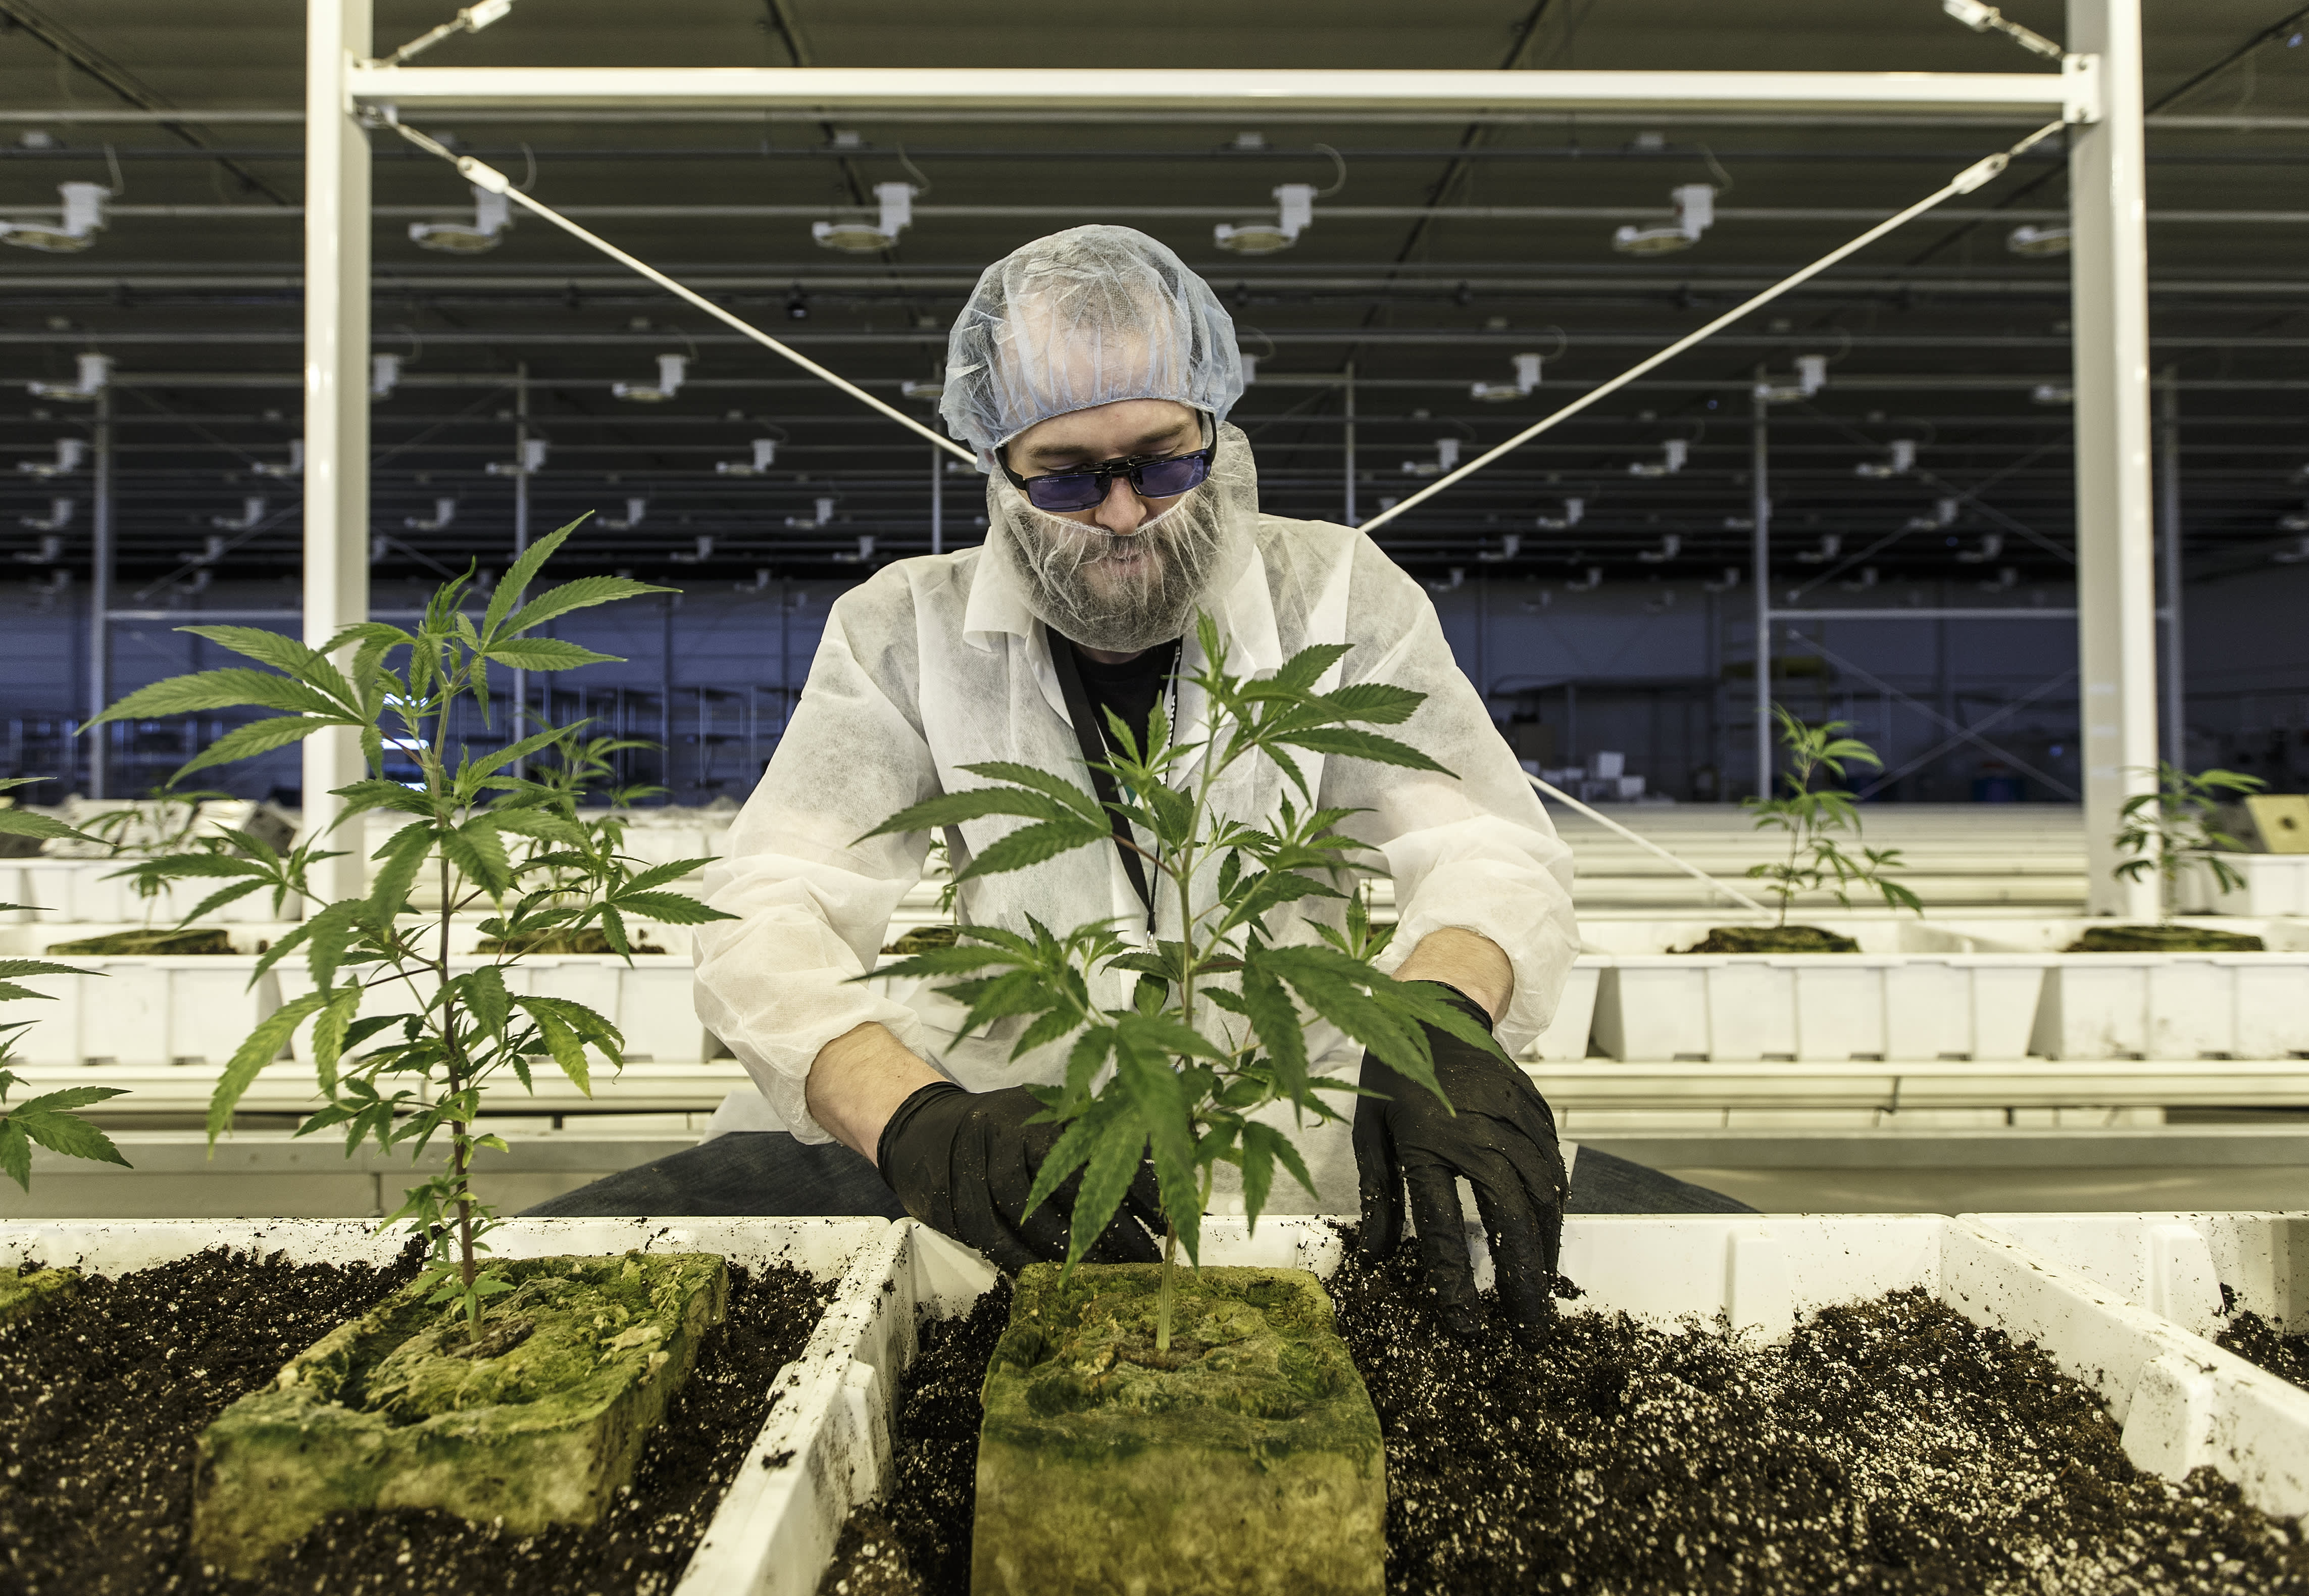 A US-based cannabis company could be active in as little as 6 months, says pot investor thumbnail